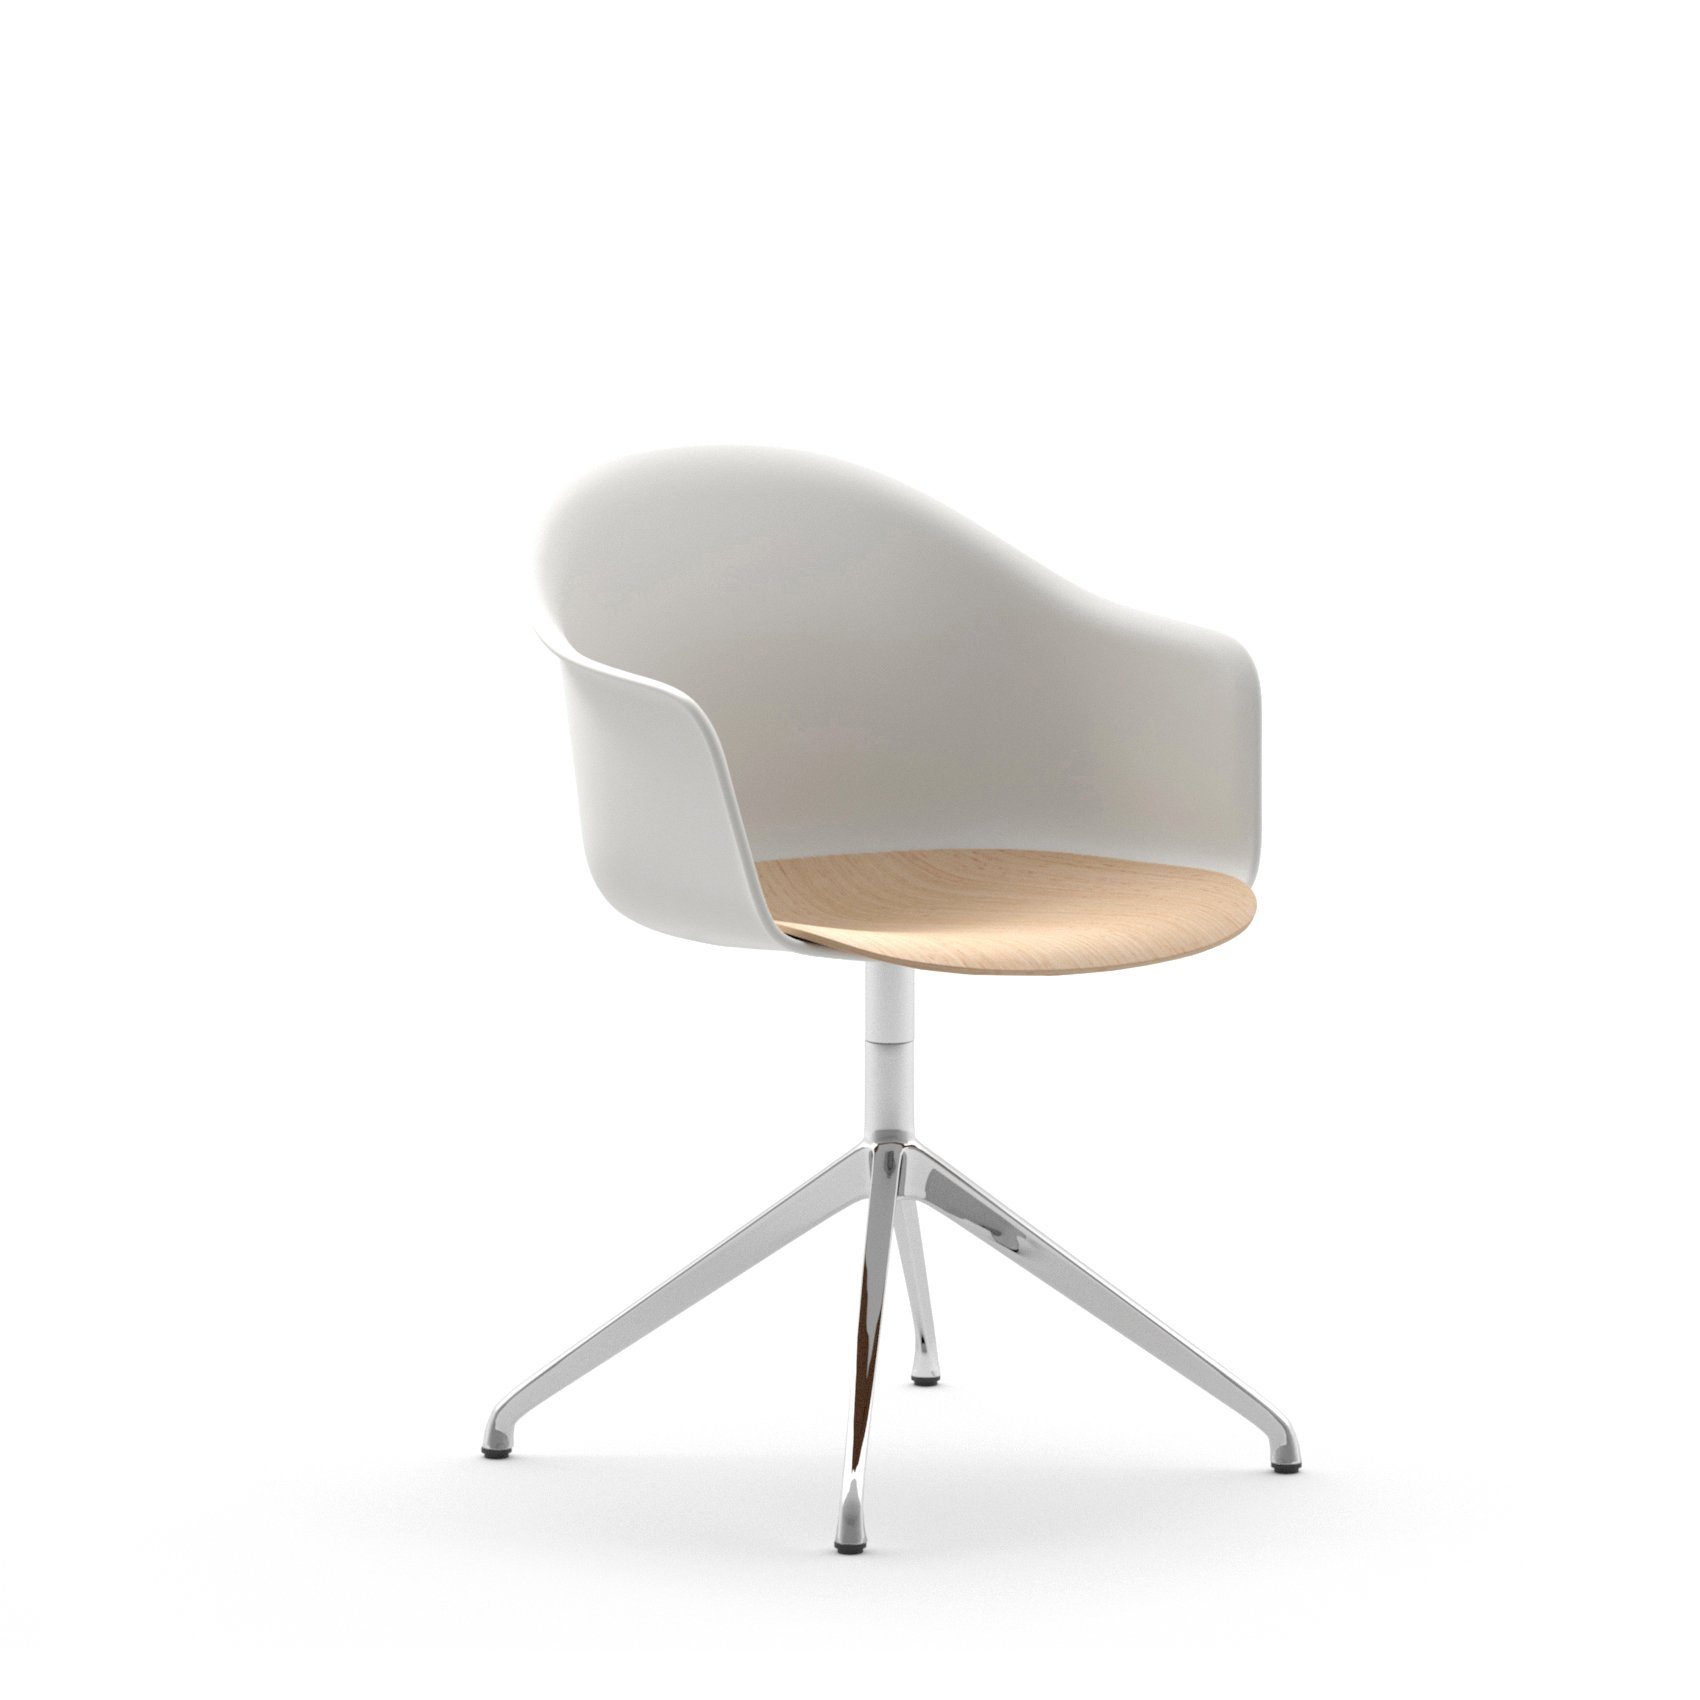 Mani Armshell SP Swivel Armchair office from Arrmet, designed by Welling/Ludvik